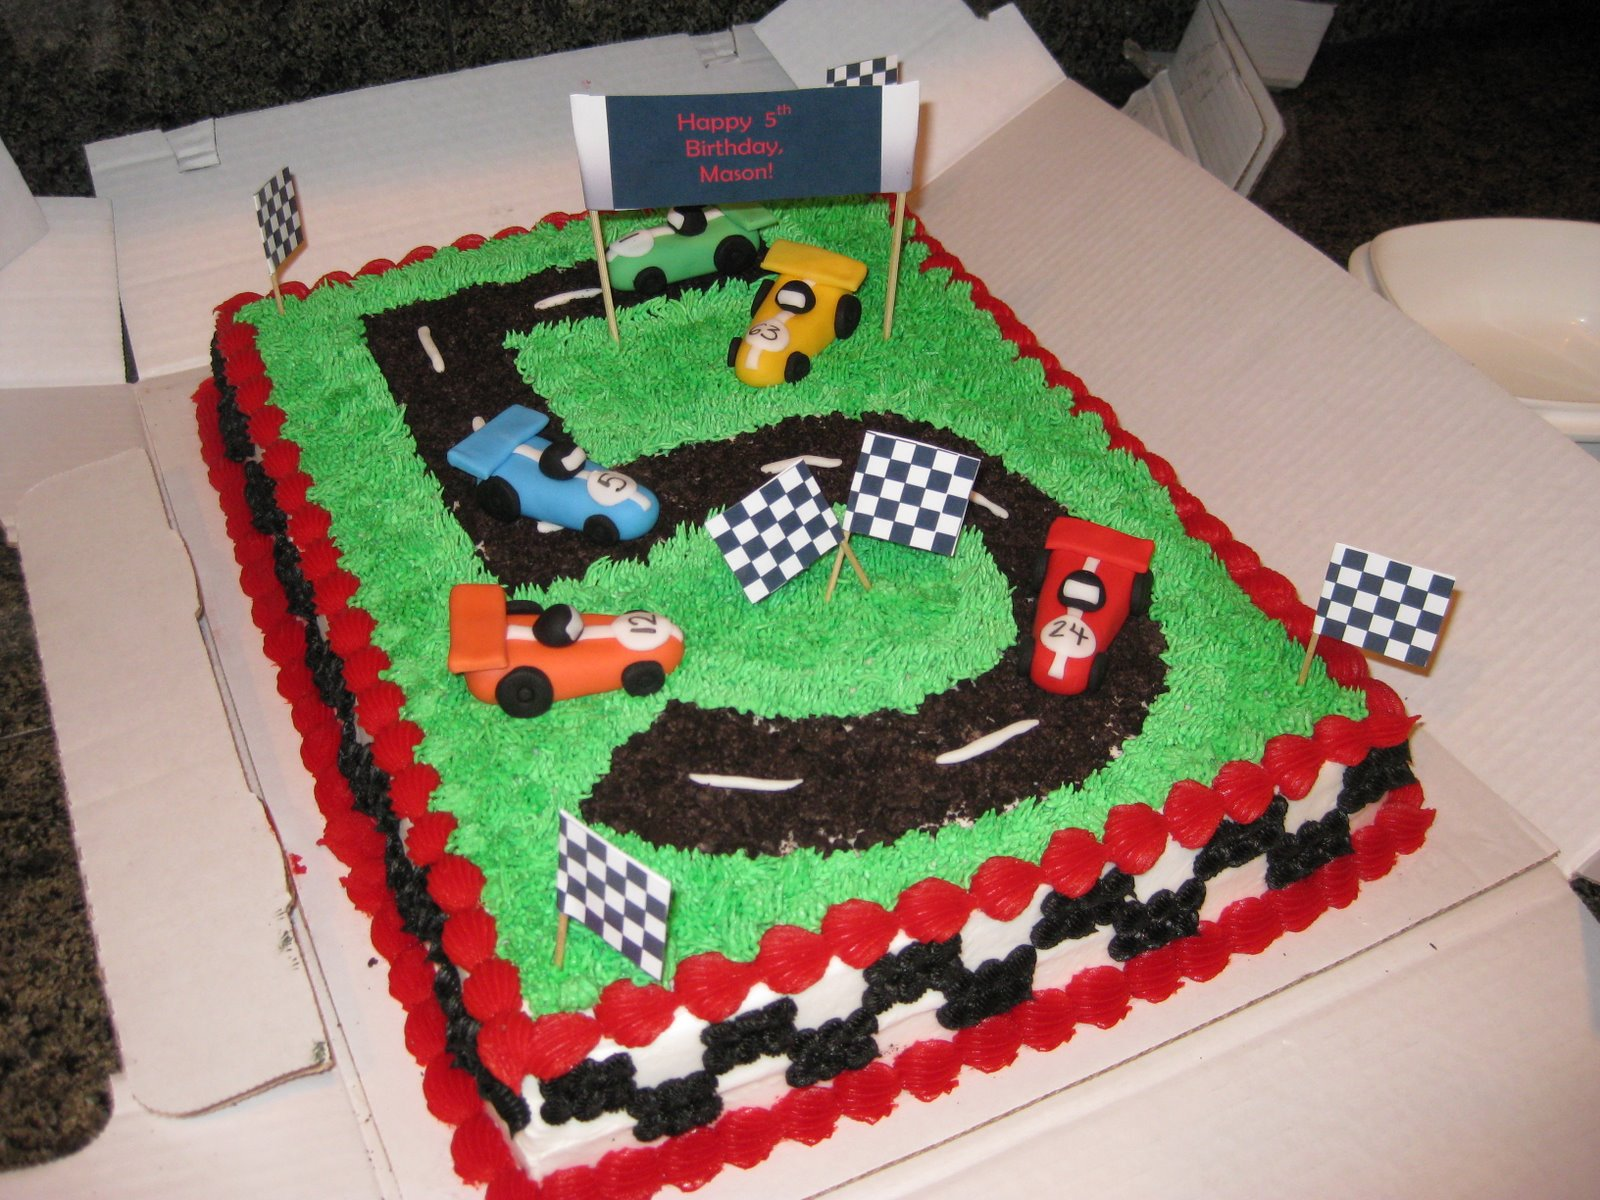 Car Cake Designs For Birthday Boy : Cars cake - updated with pictures - BabyCenter